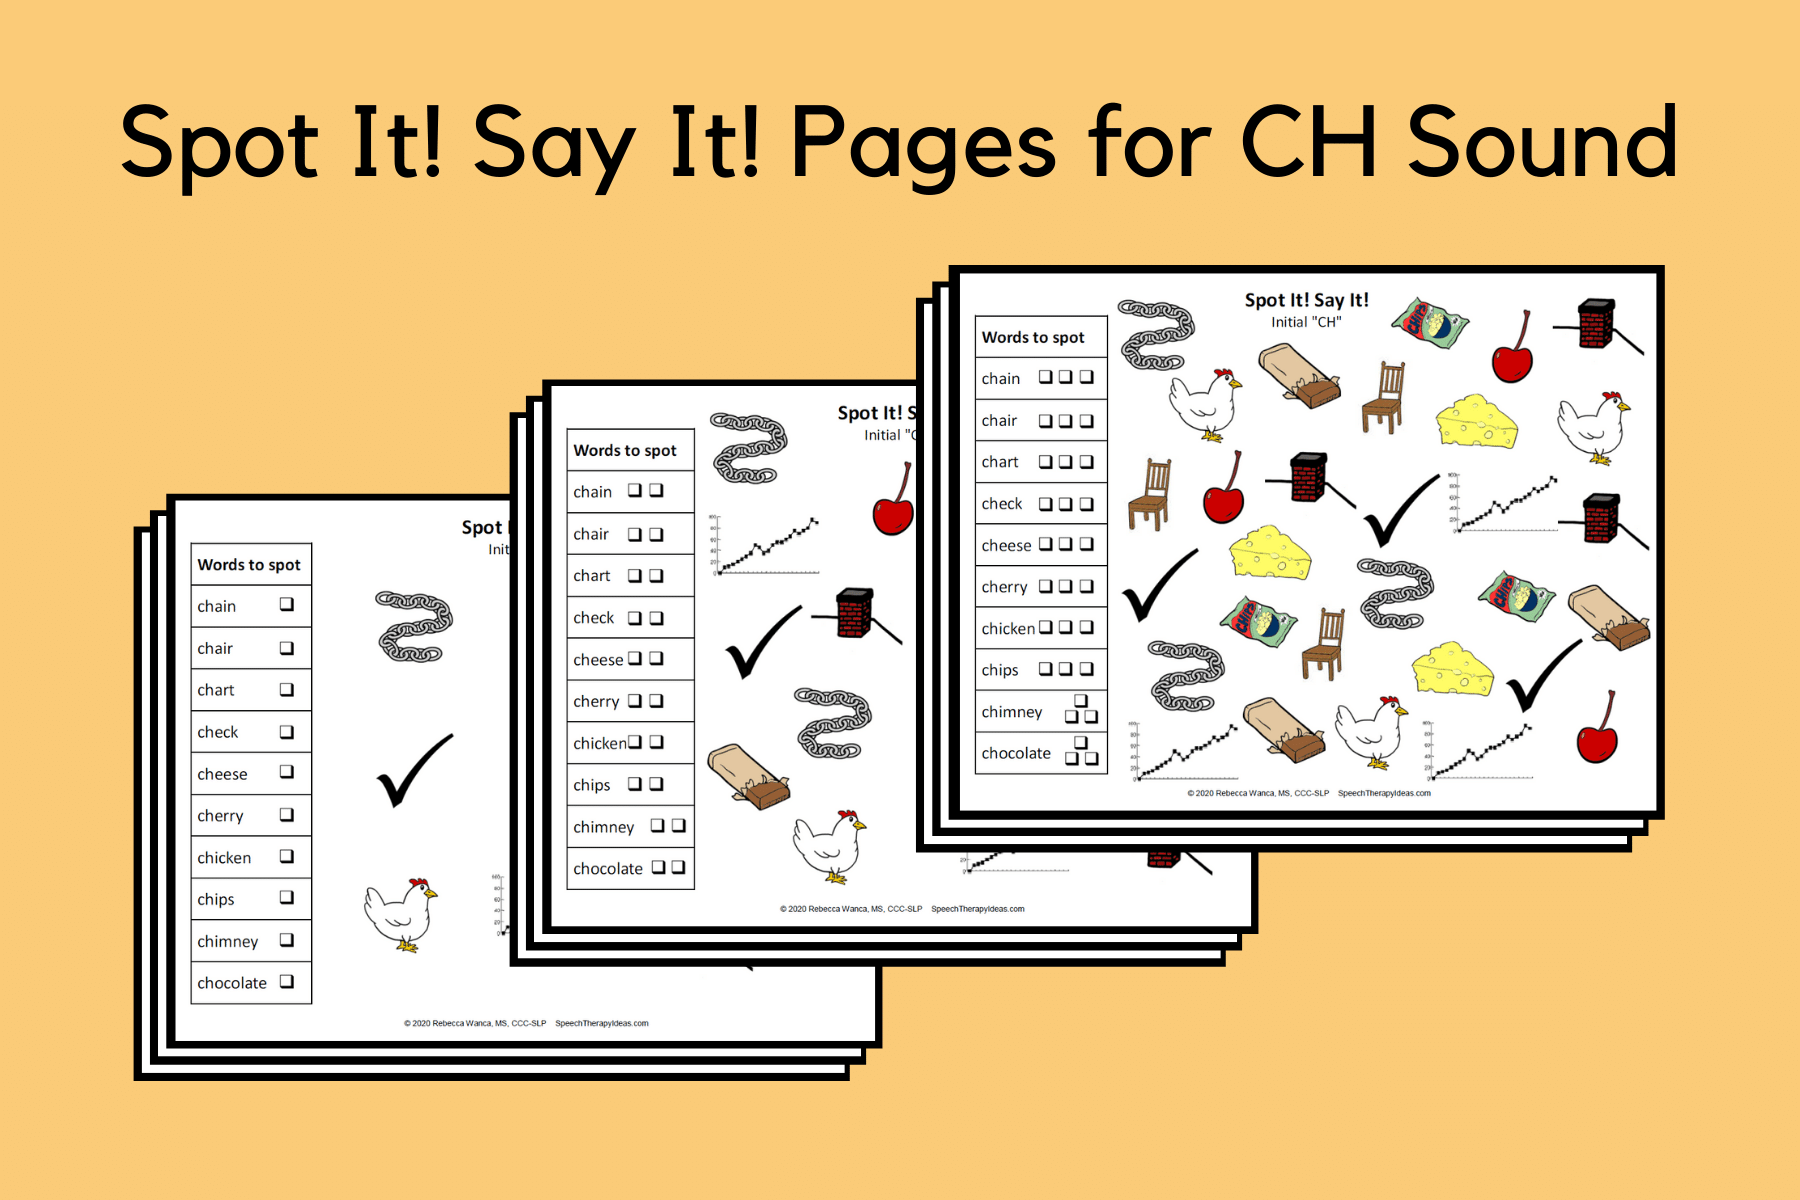 Spot It! Say It! Pages for CH Sound